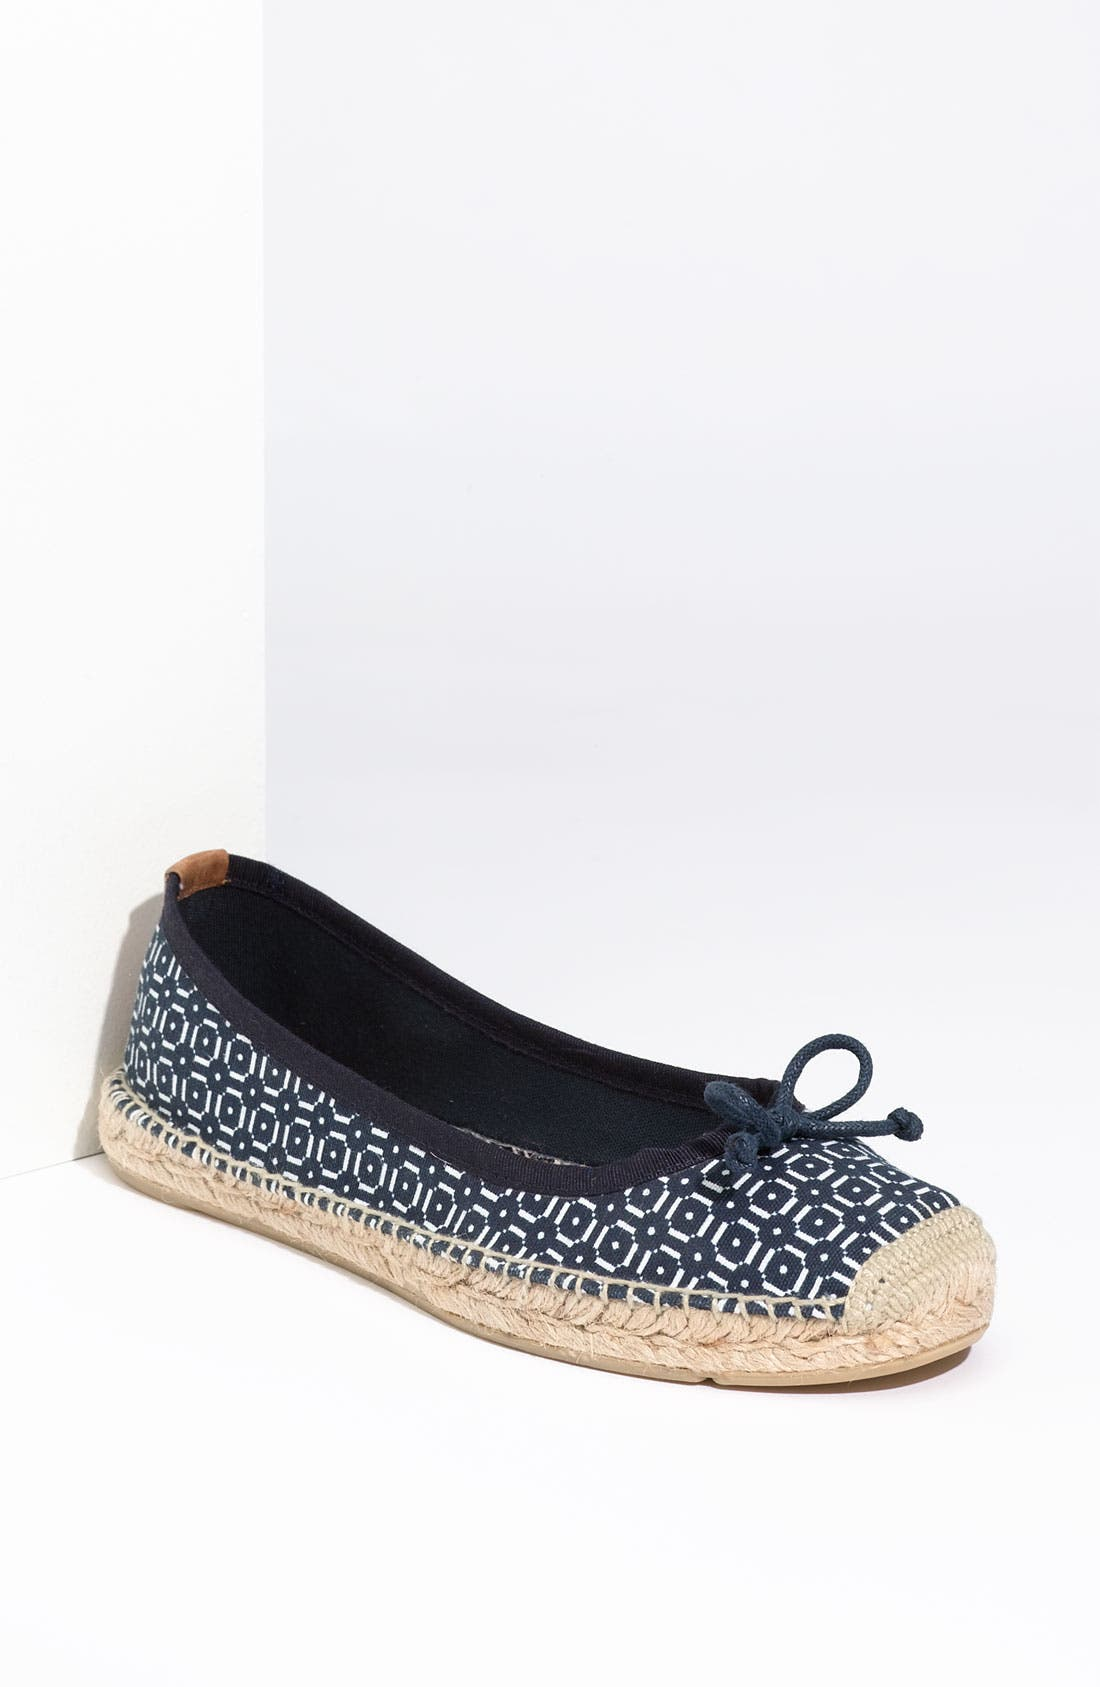 Main Image - Tory Burch Printed Flat Espadrille